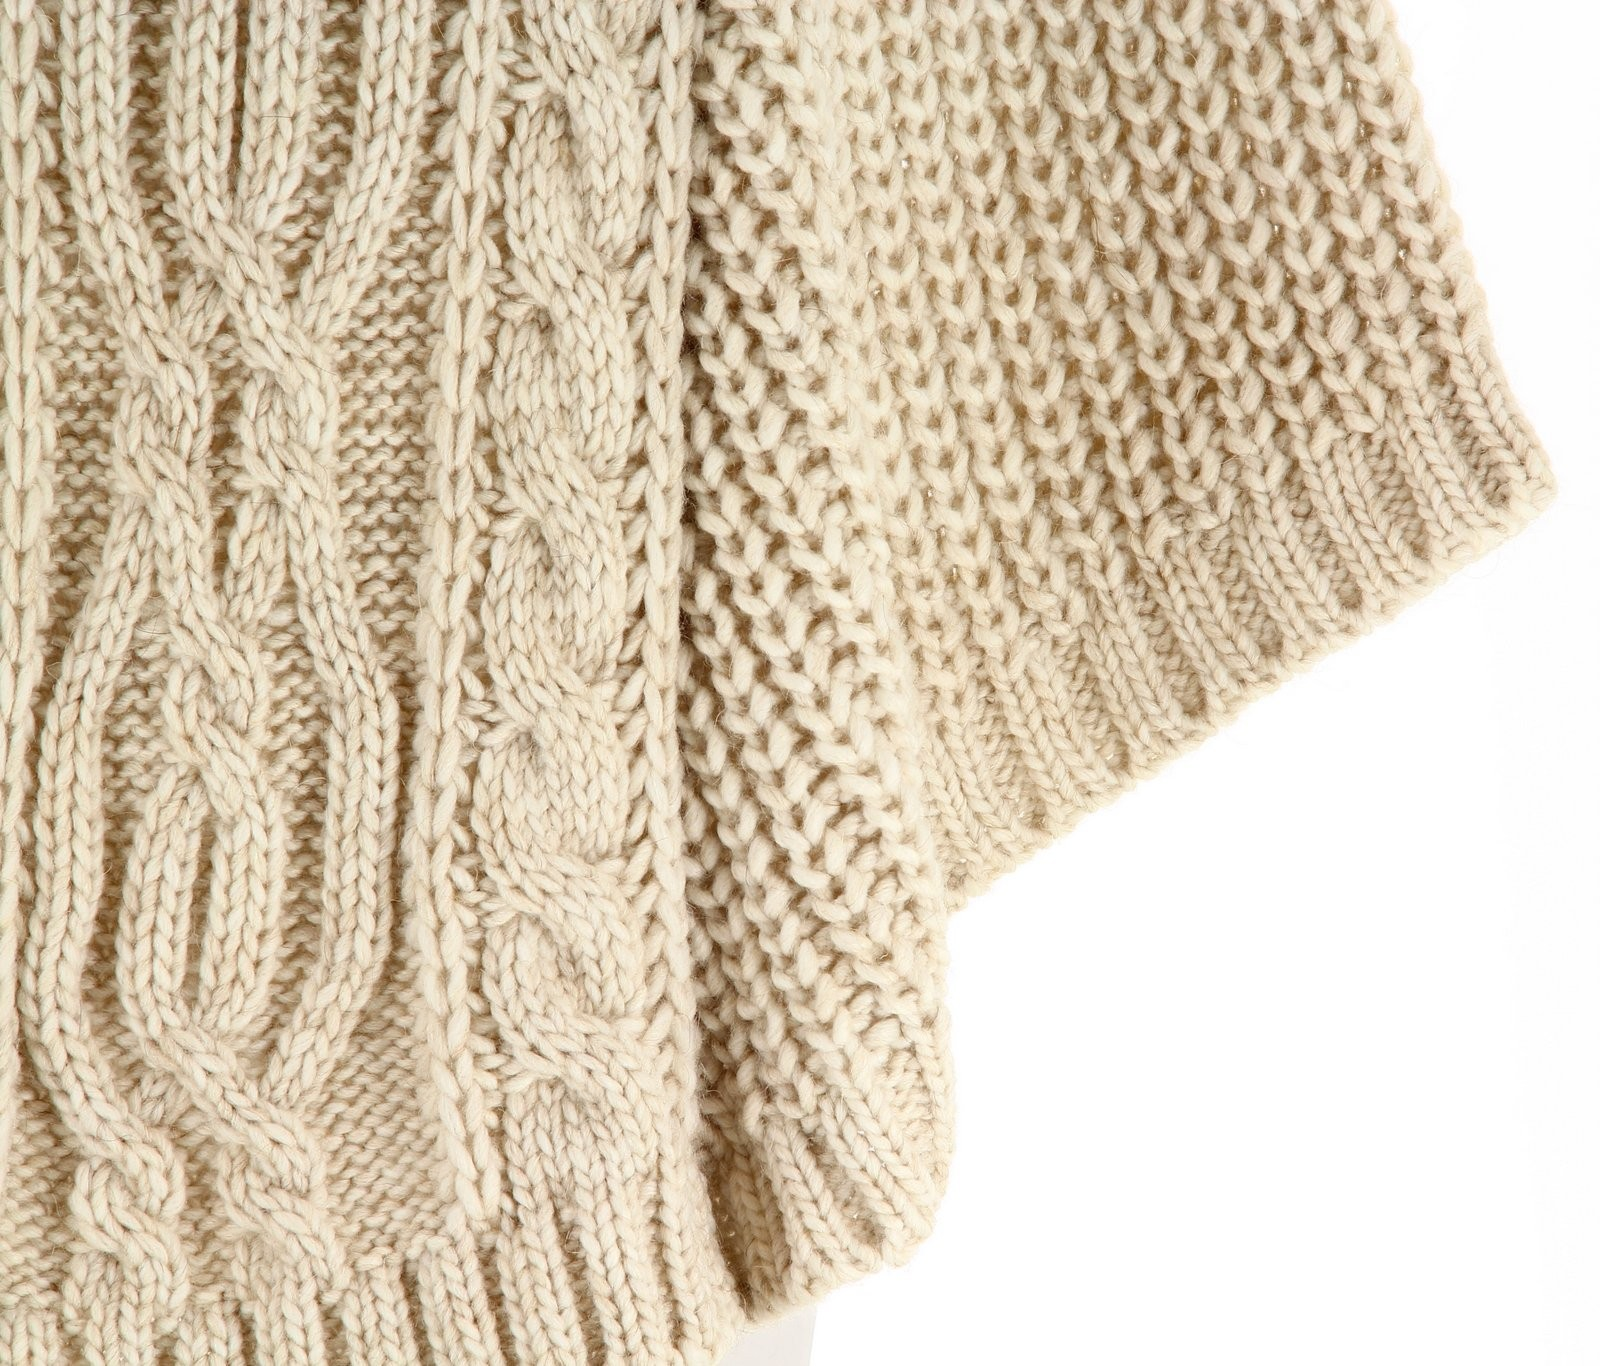 Poncho laine grosse maille laine alpaga beige elodie - Laine grosse maille ...